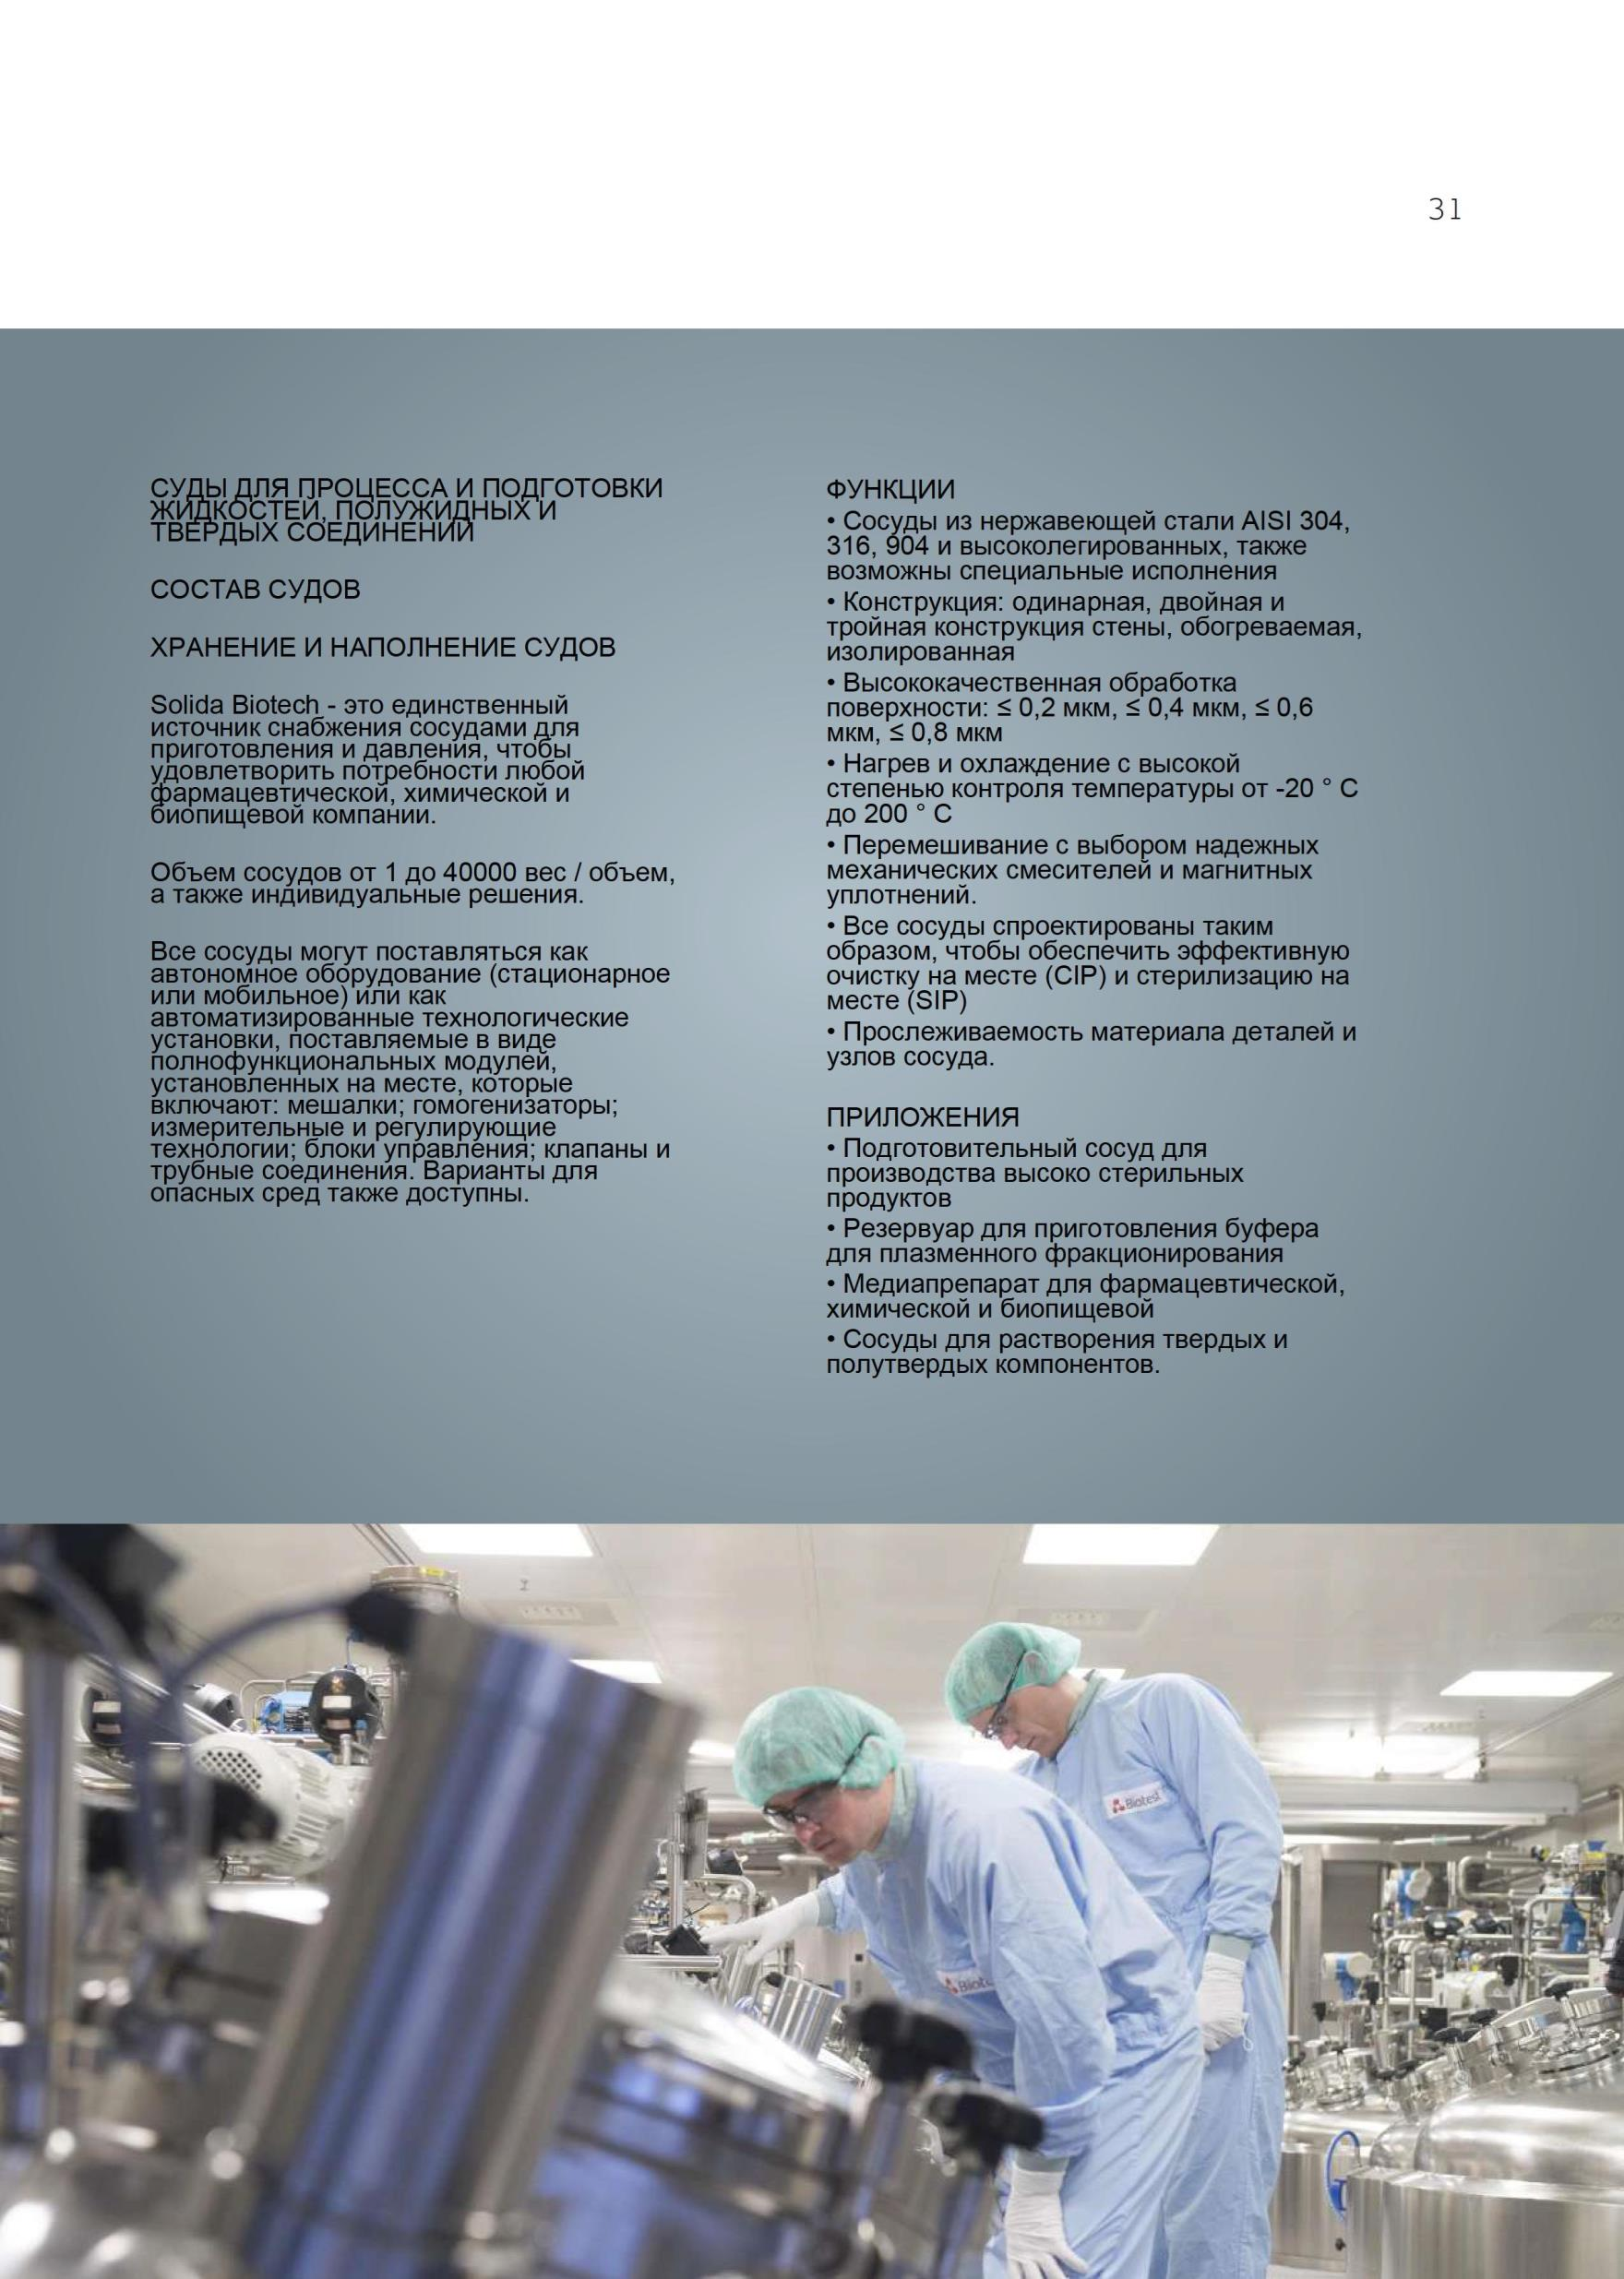 General Catalogue Solida Biotech GmBH2_compressed (2 - 0019